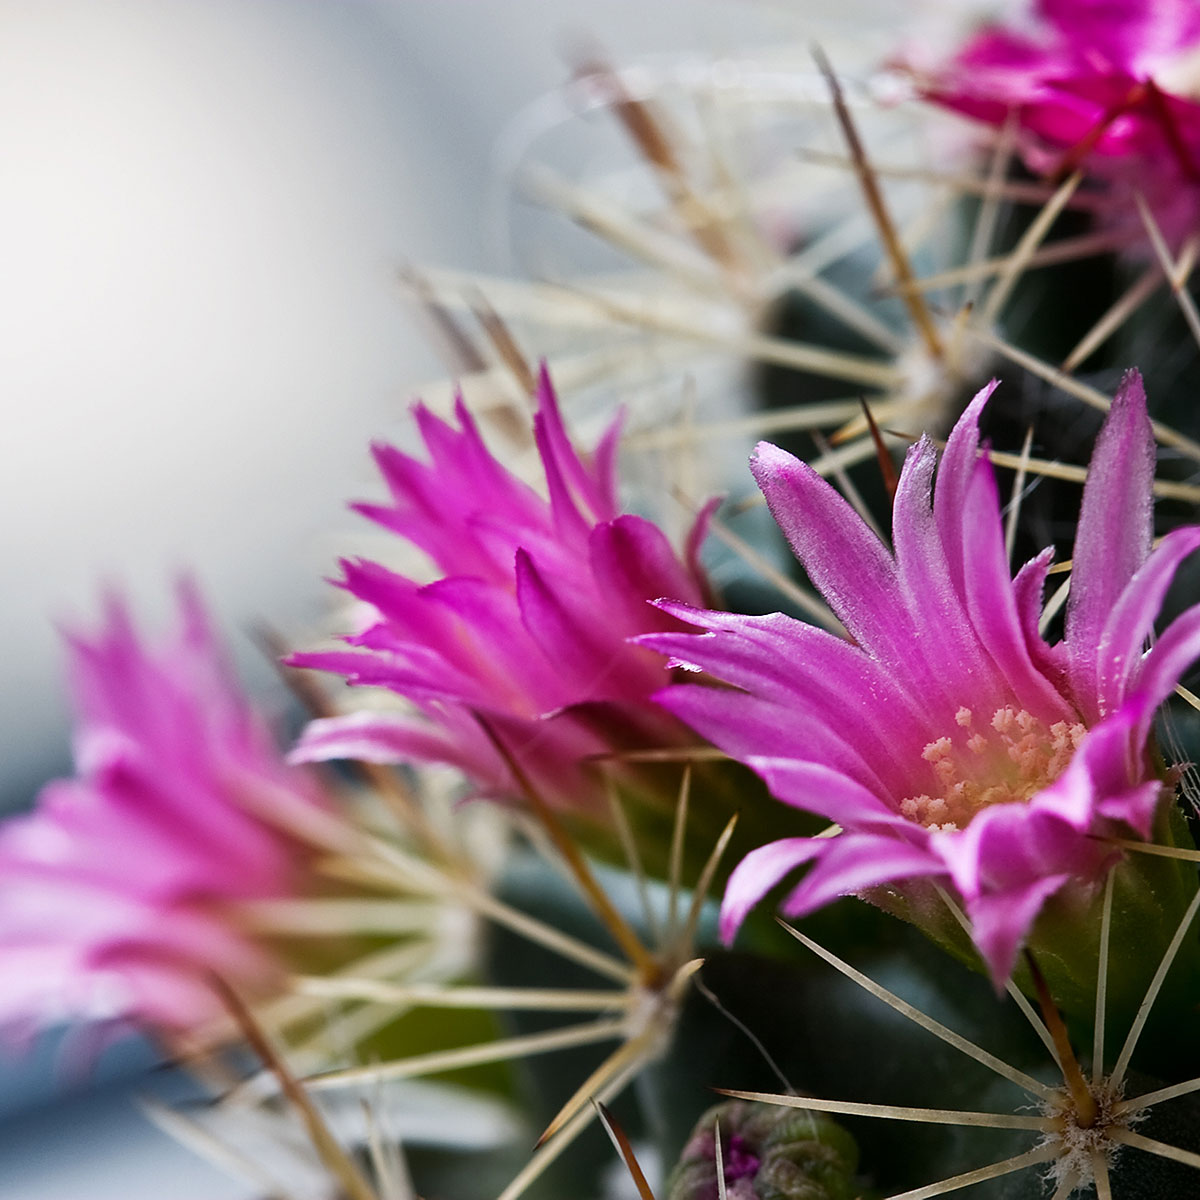 A close-up of a cactus with pink flowers